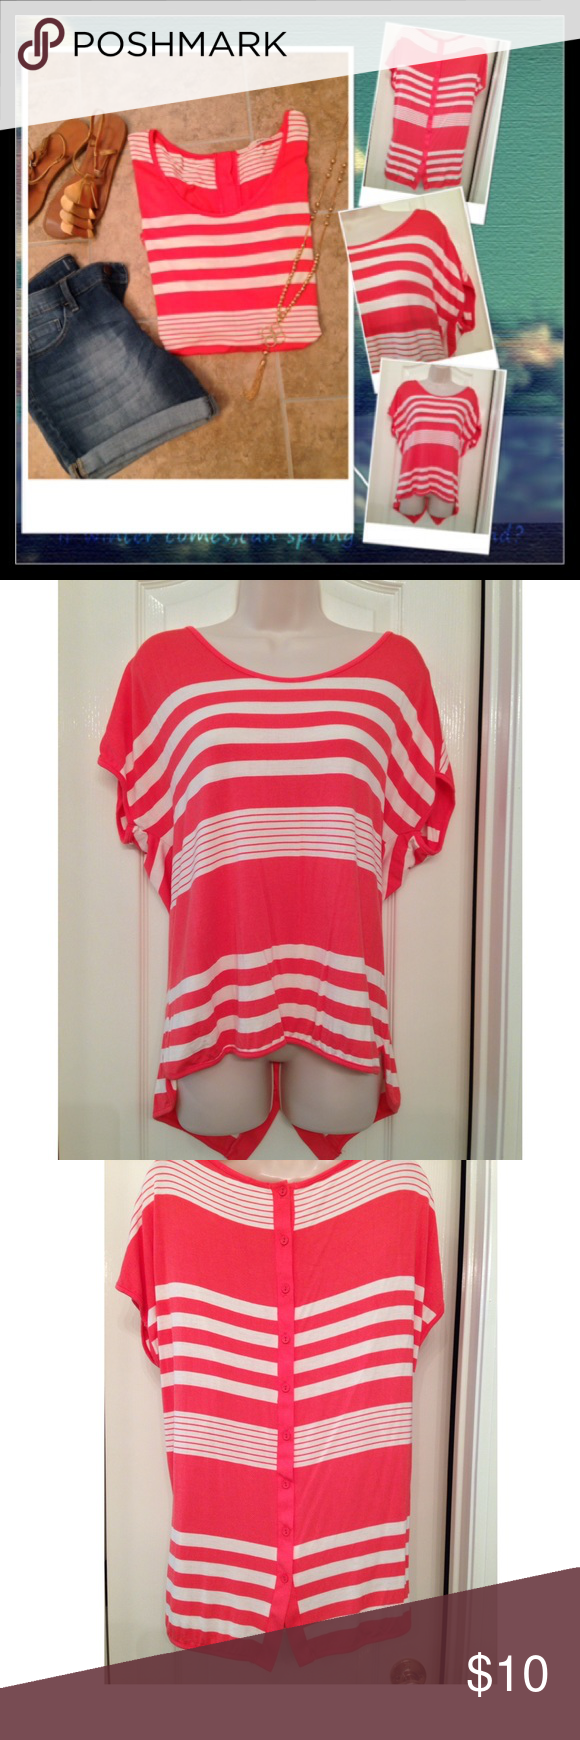 """Tunic Top Gibson top sold by Nordstrom rack. Coral stripe. Pit to pit 22"""". Length front 26"""" back 29"""". Cute back button detail. 95% rayon 5% spandex. Hand wash cold. Excellent condition! Gibson Tops Tunics"""